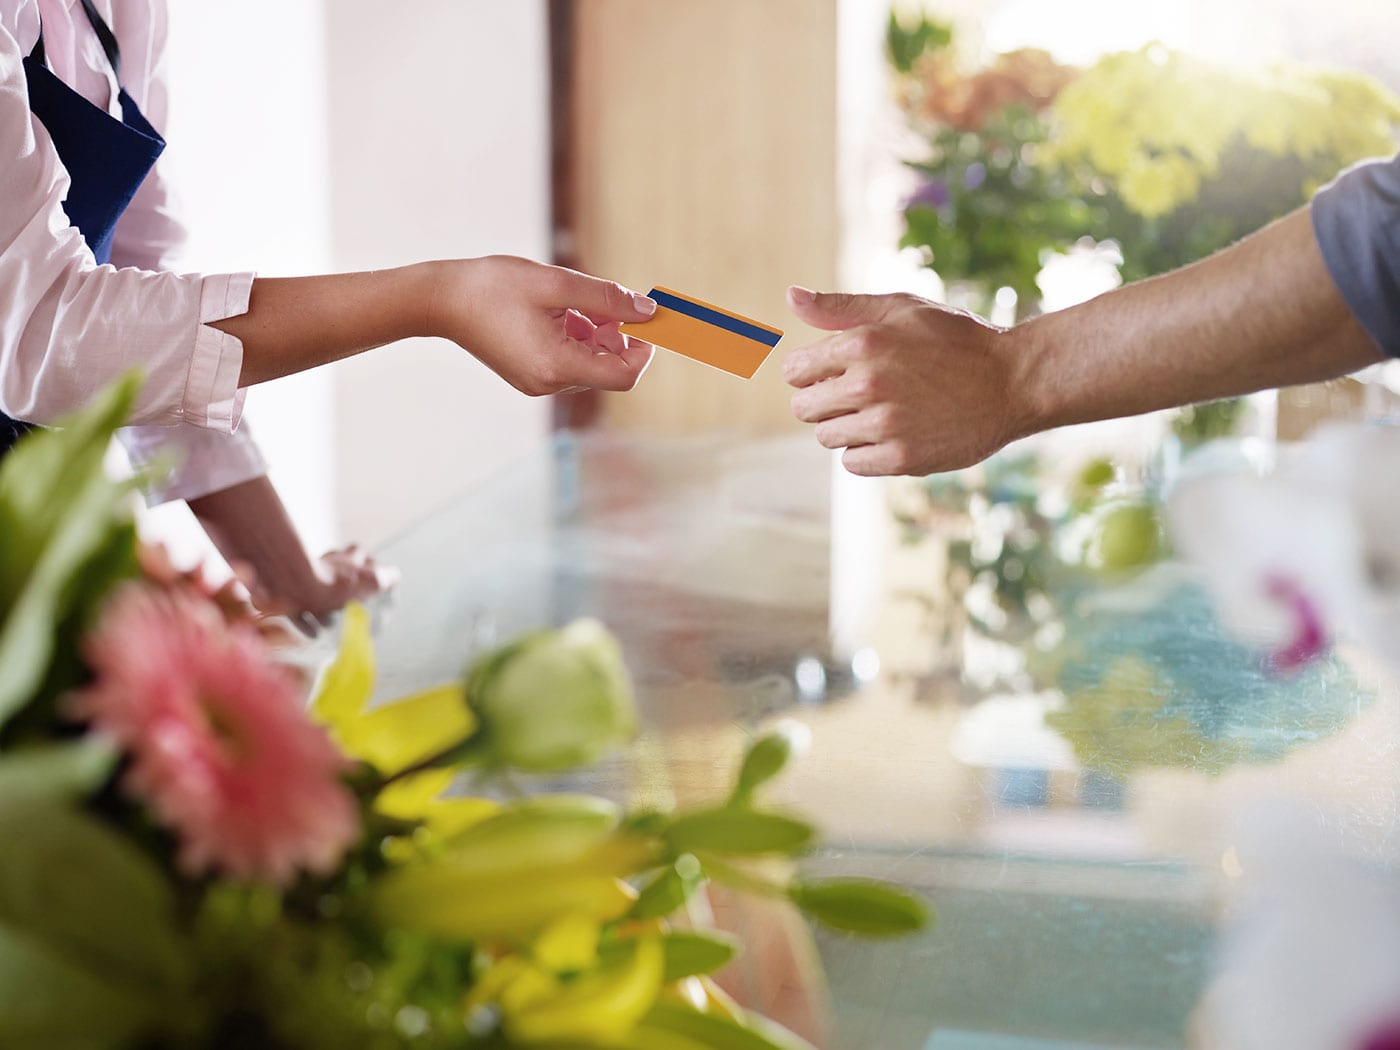 How Do Retail Credit Cards Affect Your Credit Score? article image.